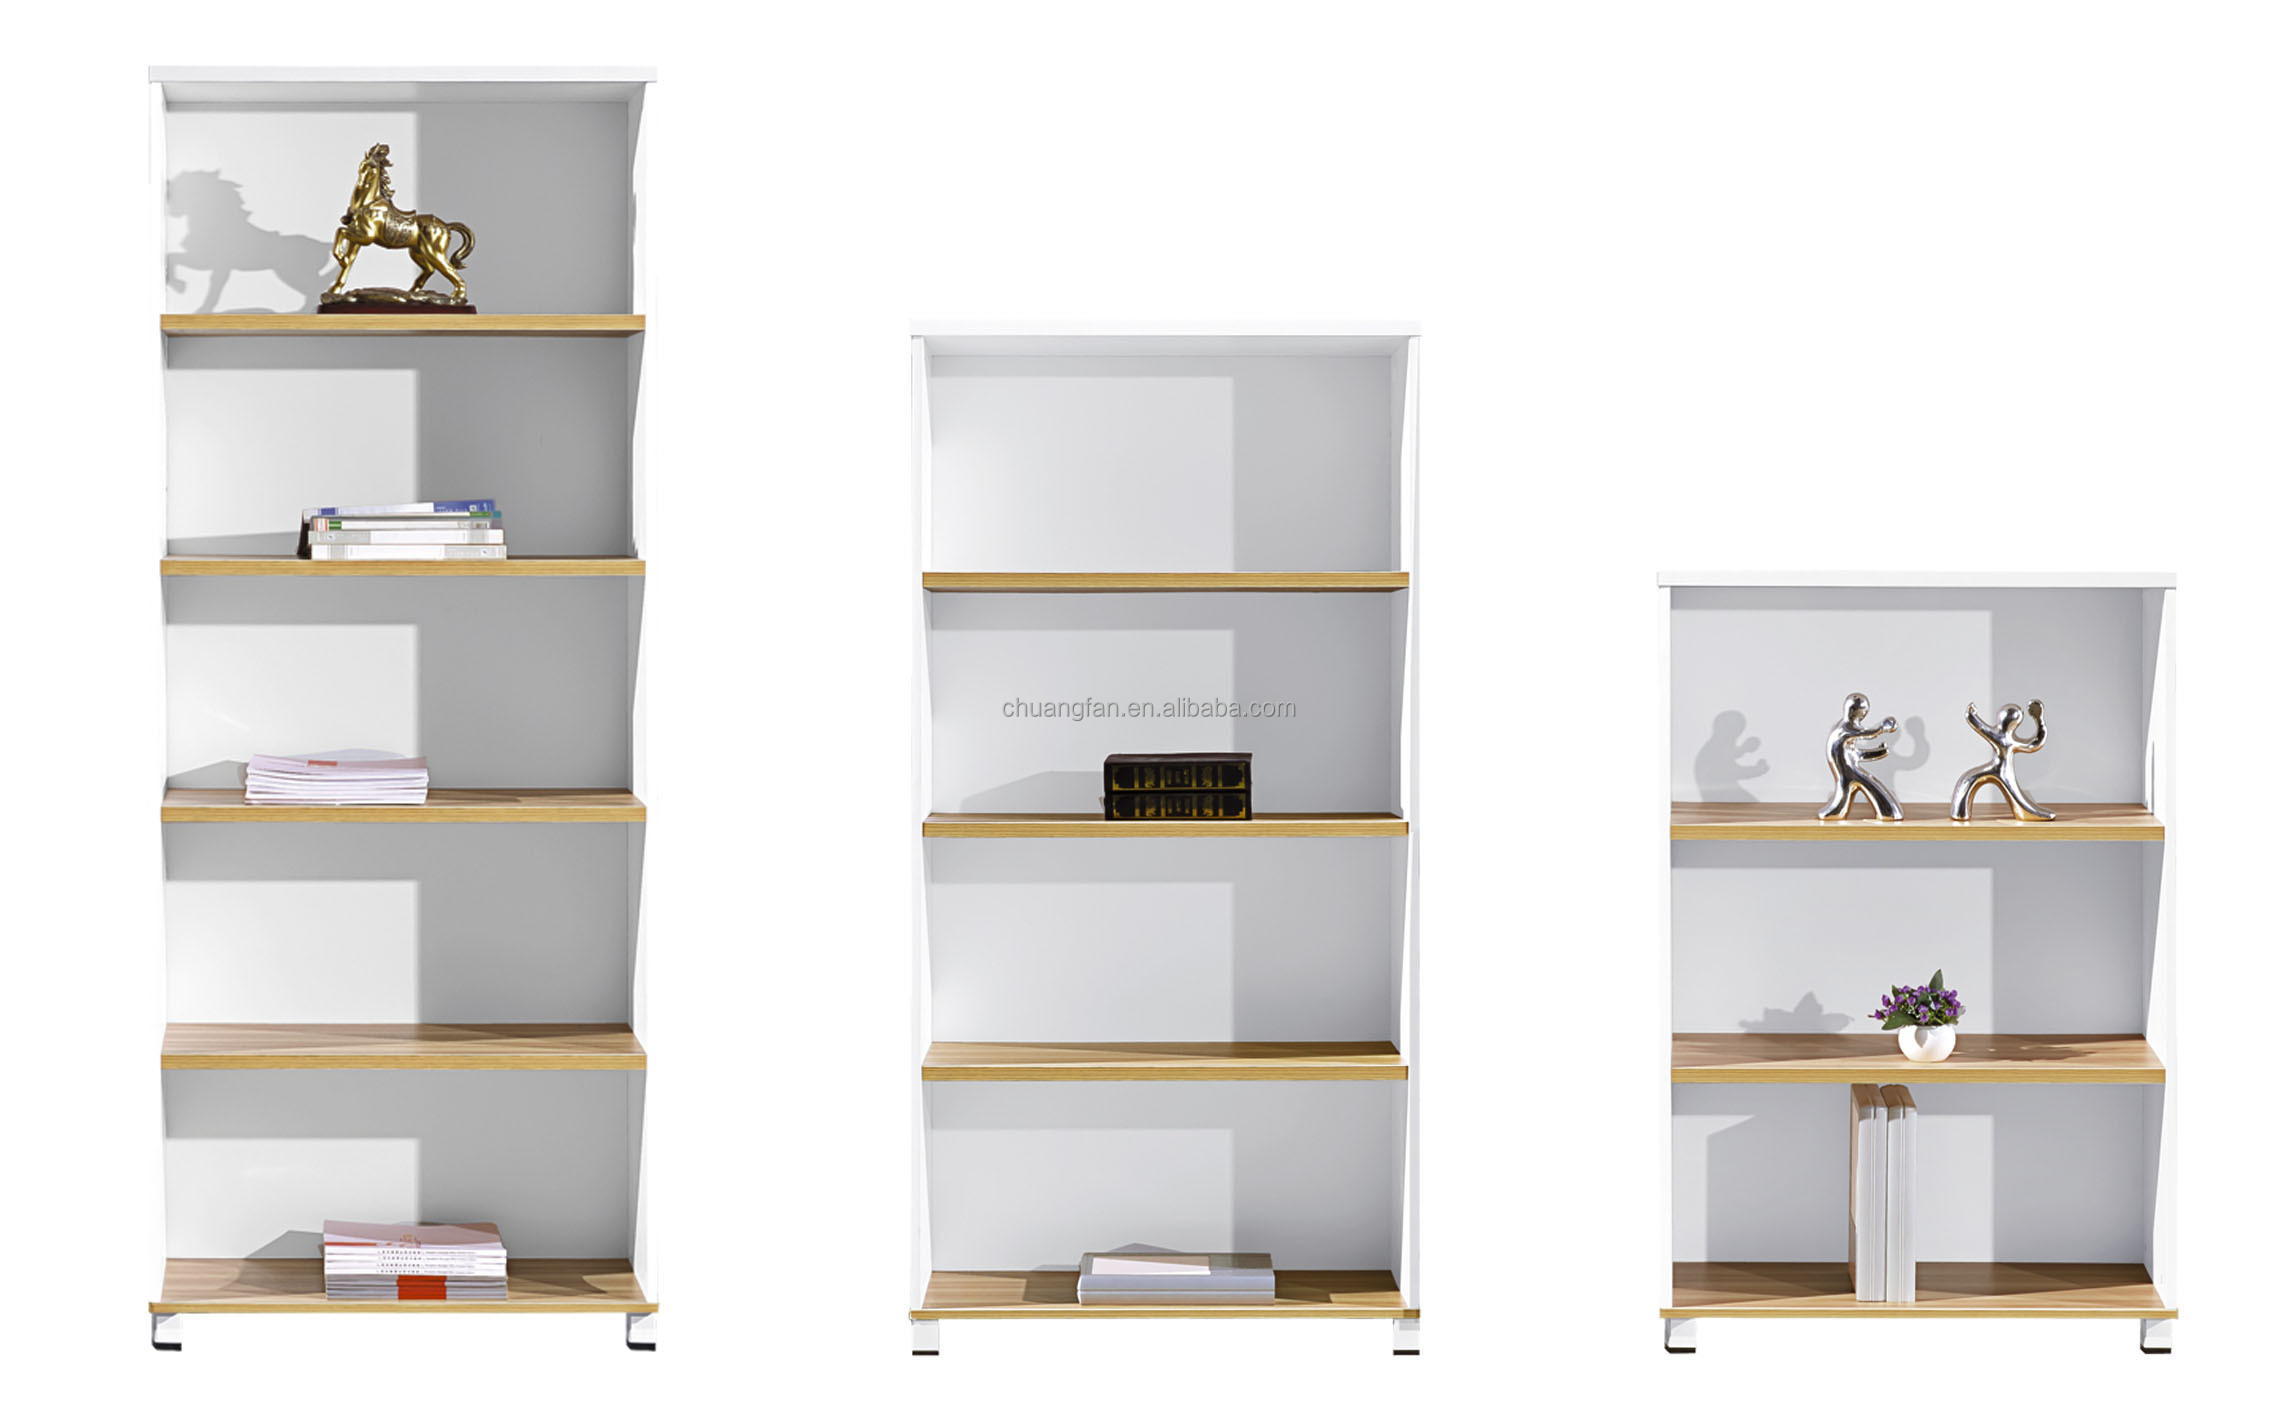 office designs file cabinet. Office File Racks Designs. Modern Storage Cabinets Designs N Cabinet E